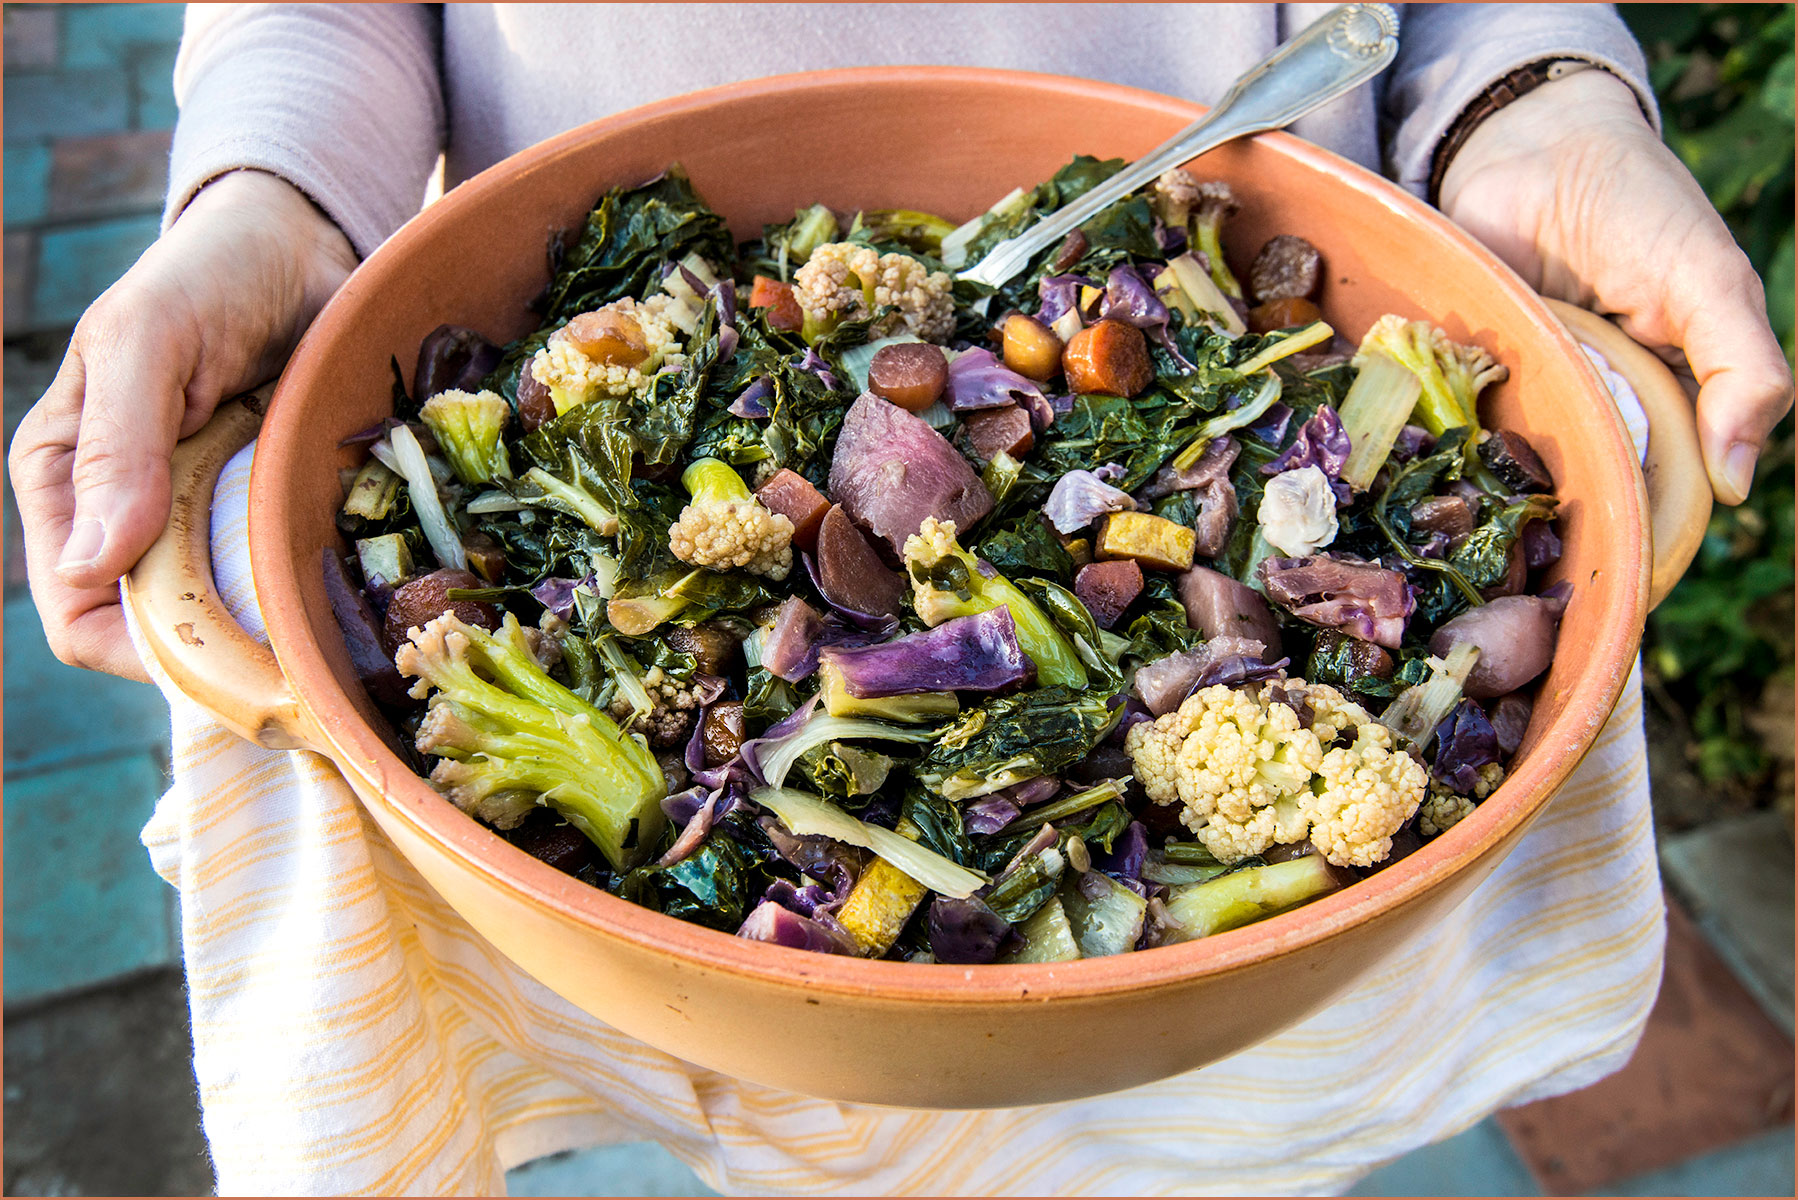 Sofias-with-bowl-of-cooked-veggies